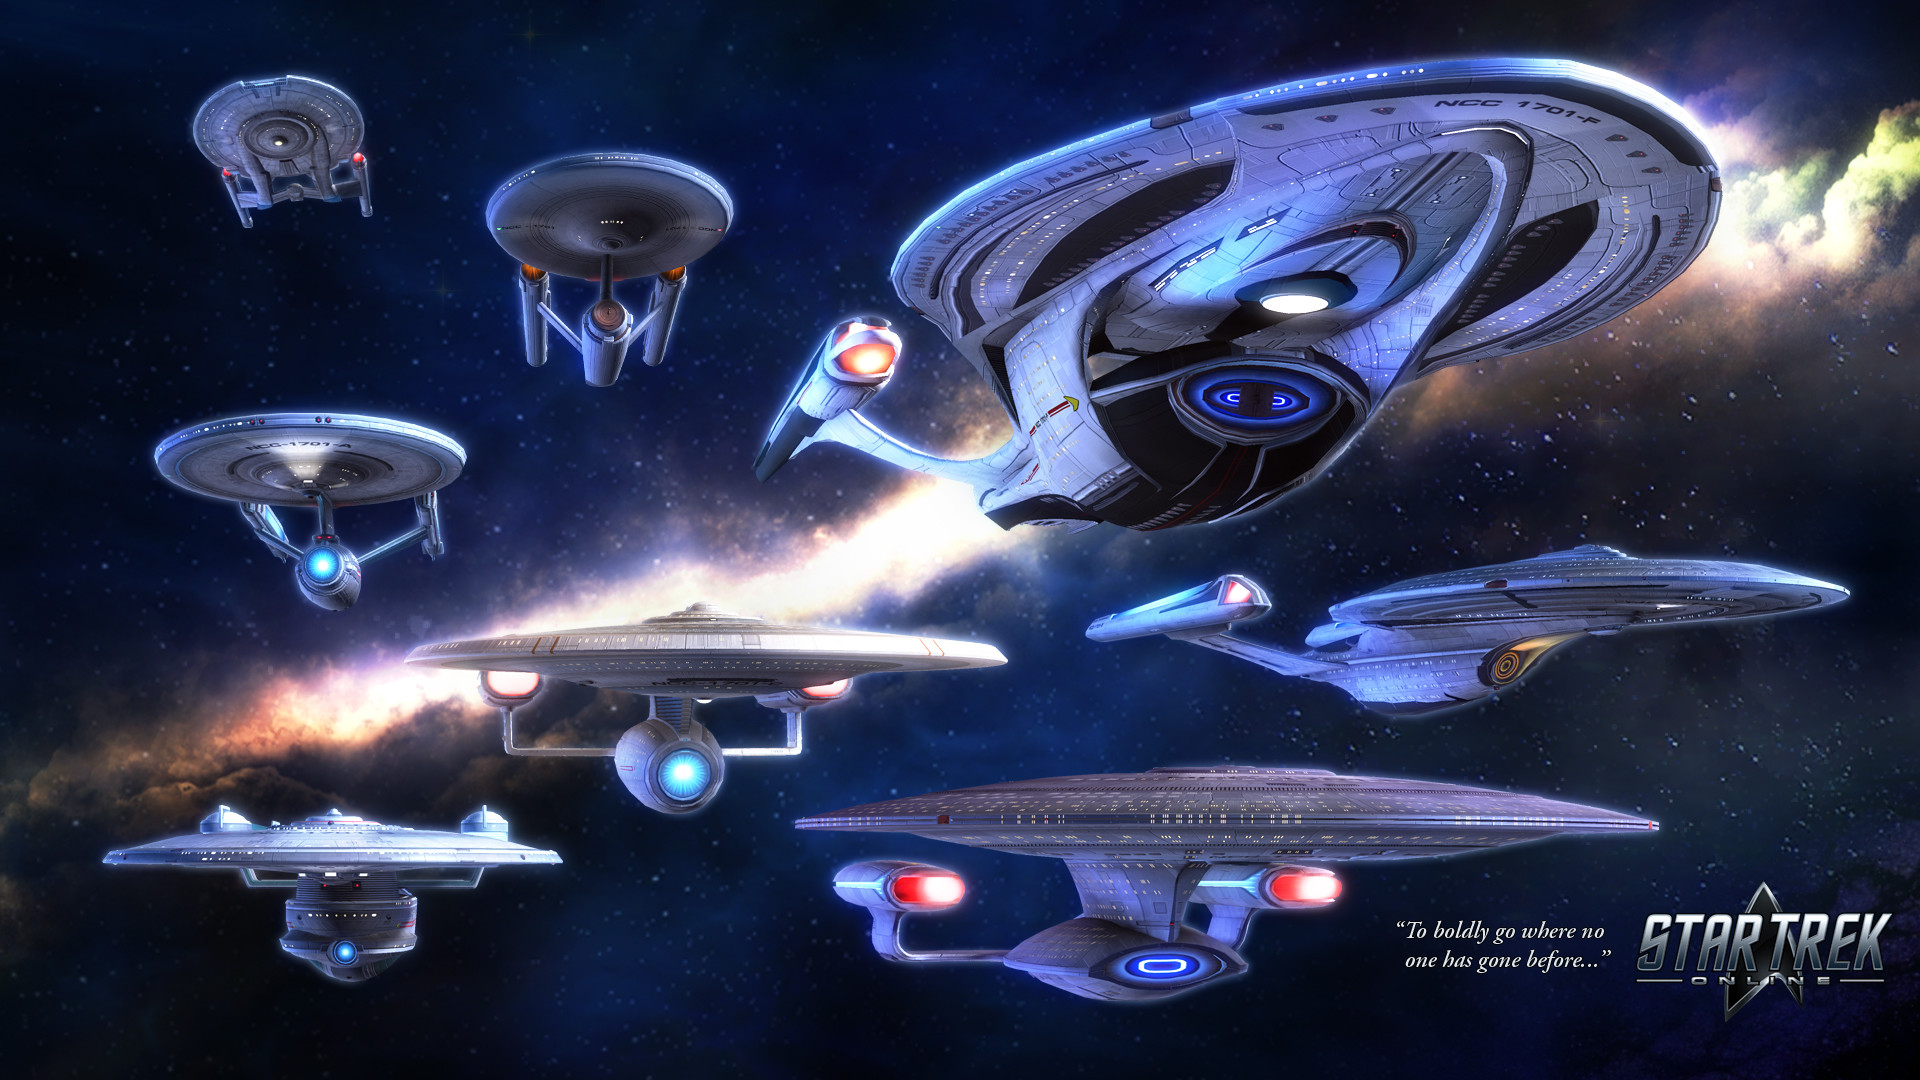 1920x1080 Star Trek Enterprise Ship wallpaper